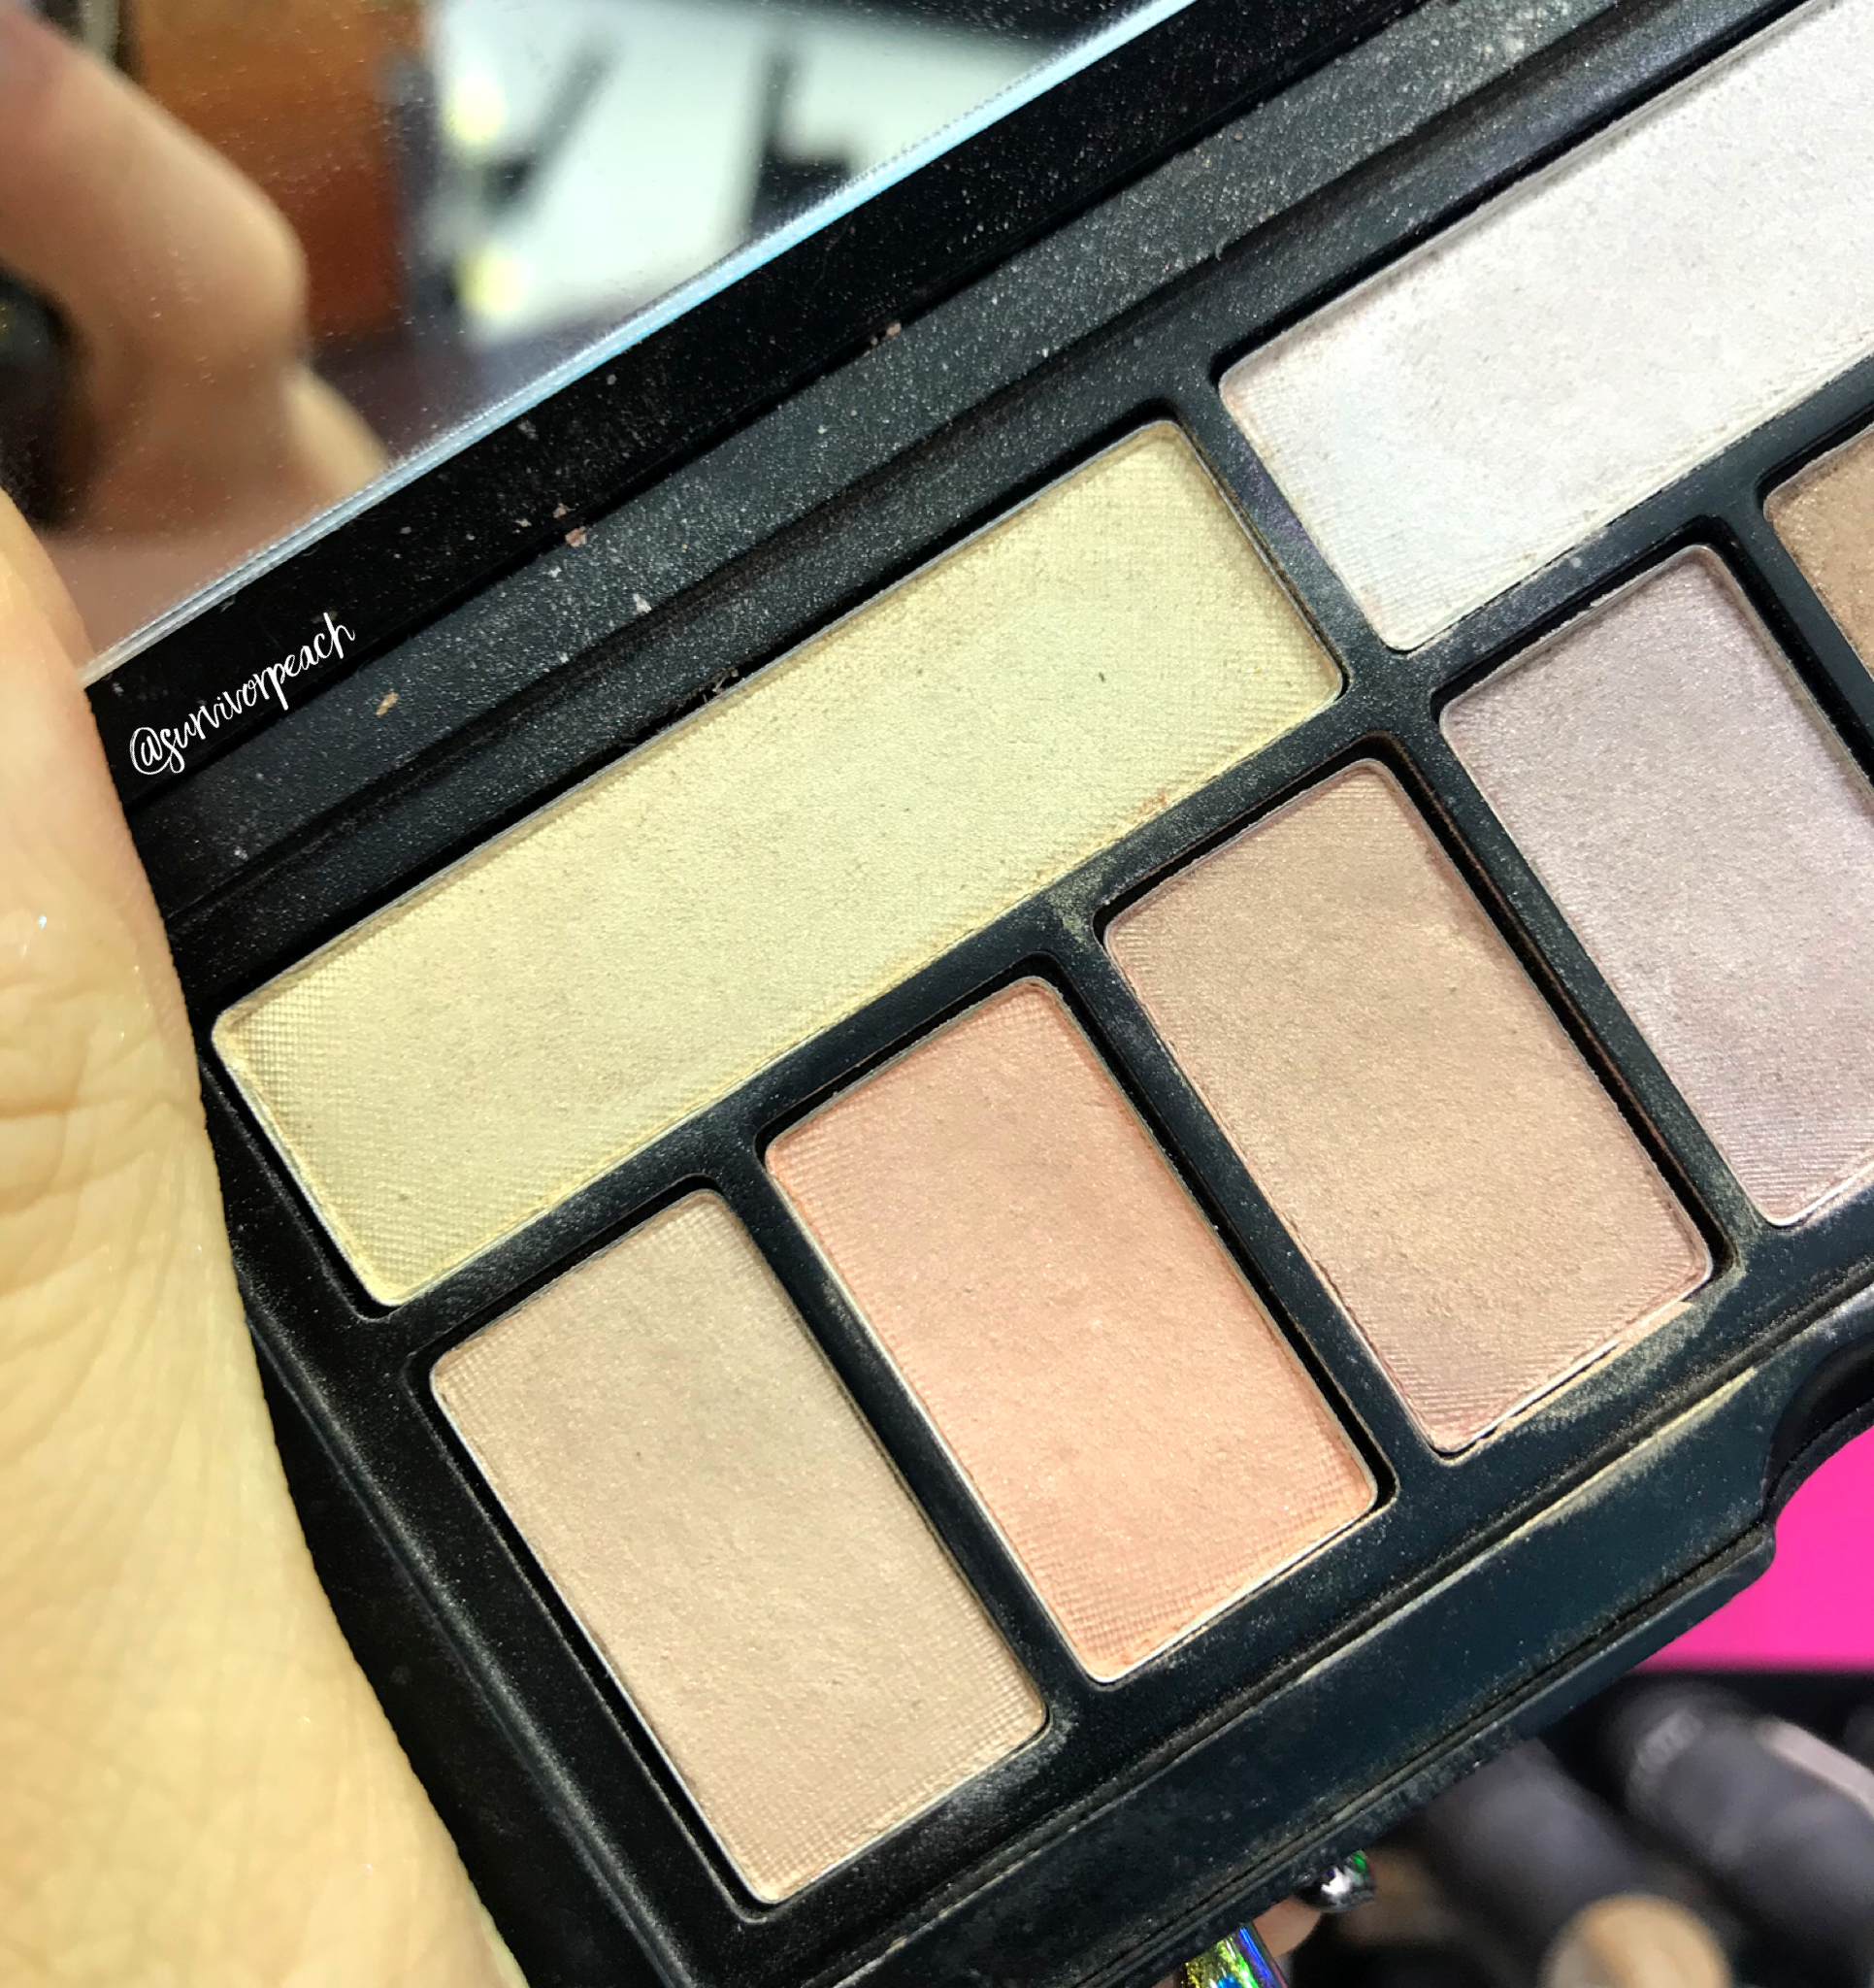 Smashbox Covershot palette: Softlight